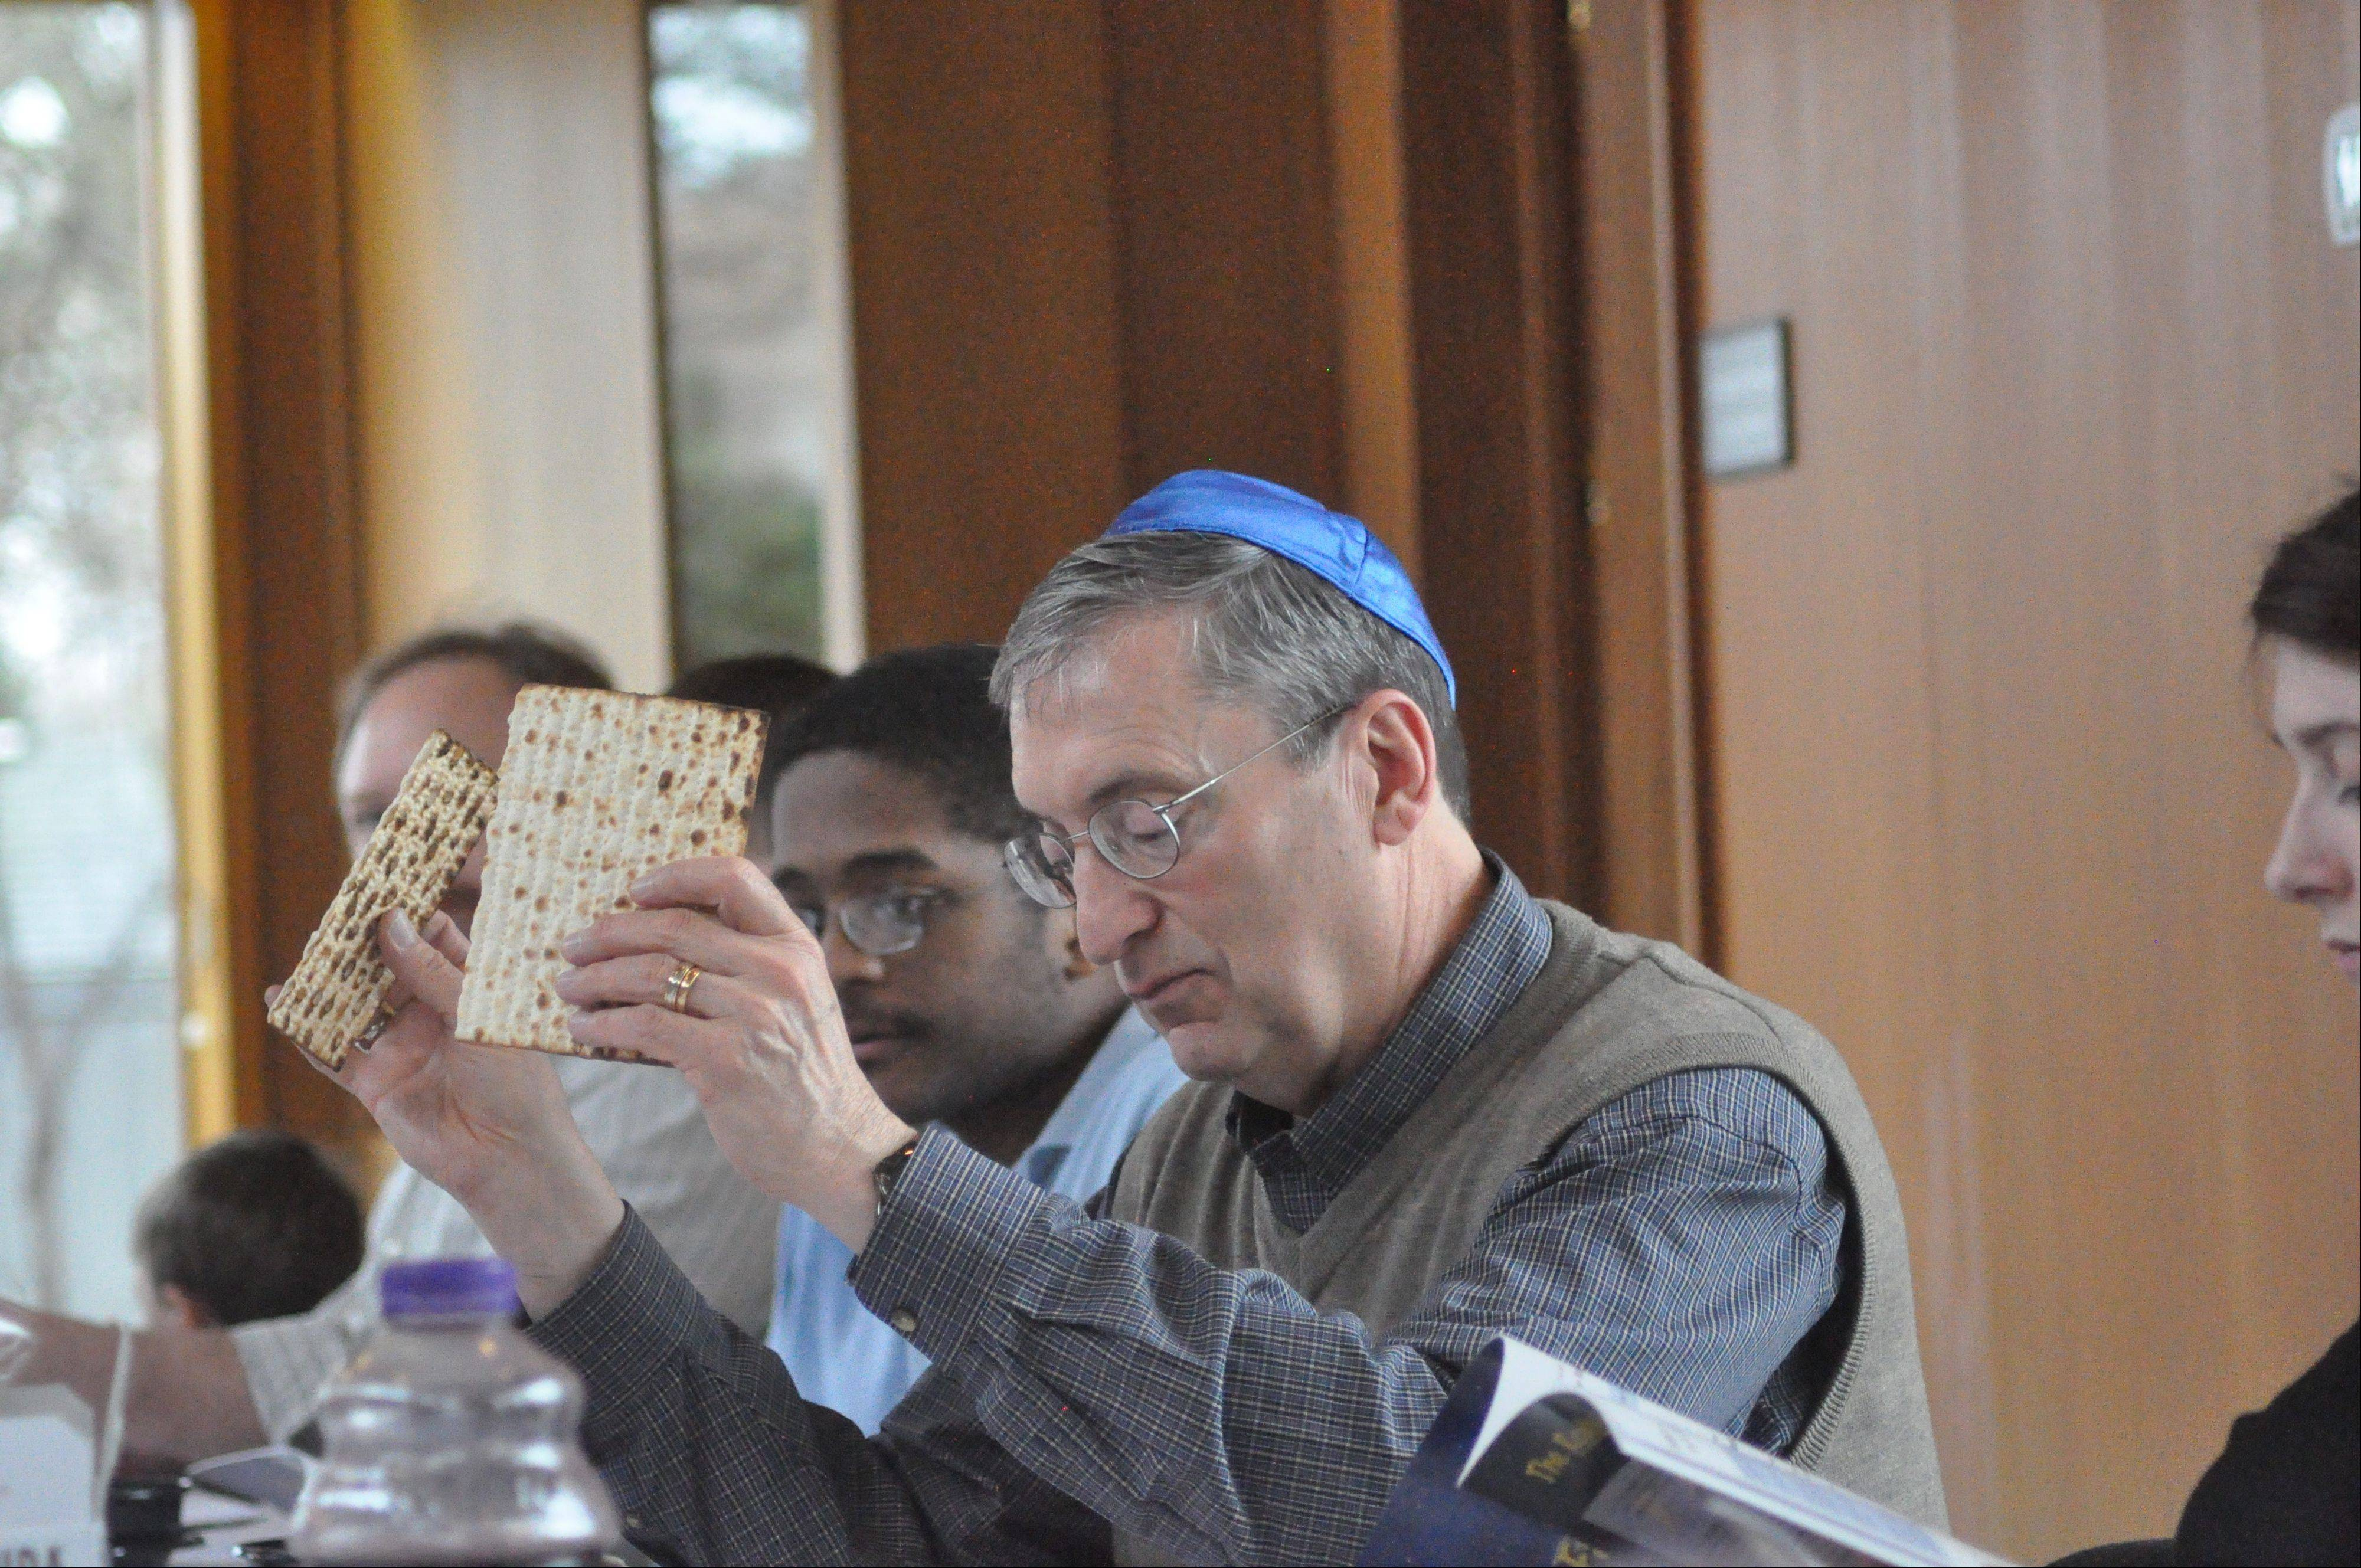 Aurora University often holds religious gatherings, such as this Passover Seder in 2011, at the Wackerlin Center for Faith and Action, which will be expanded under an addition plan approved this week by the Aurora City Council.